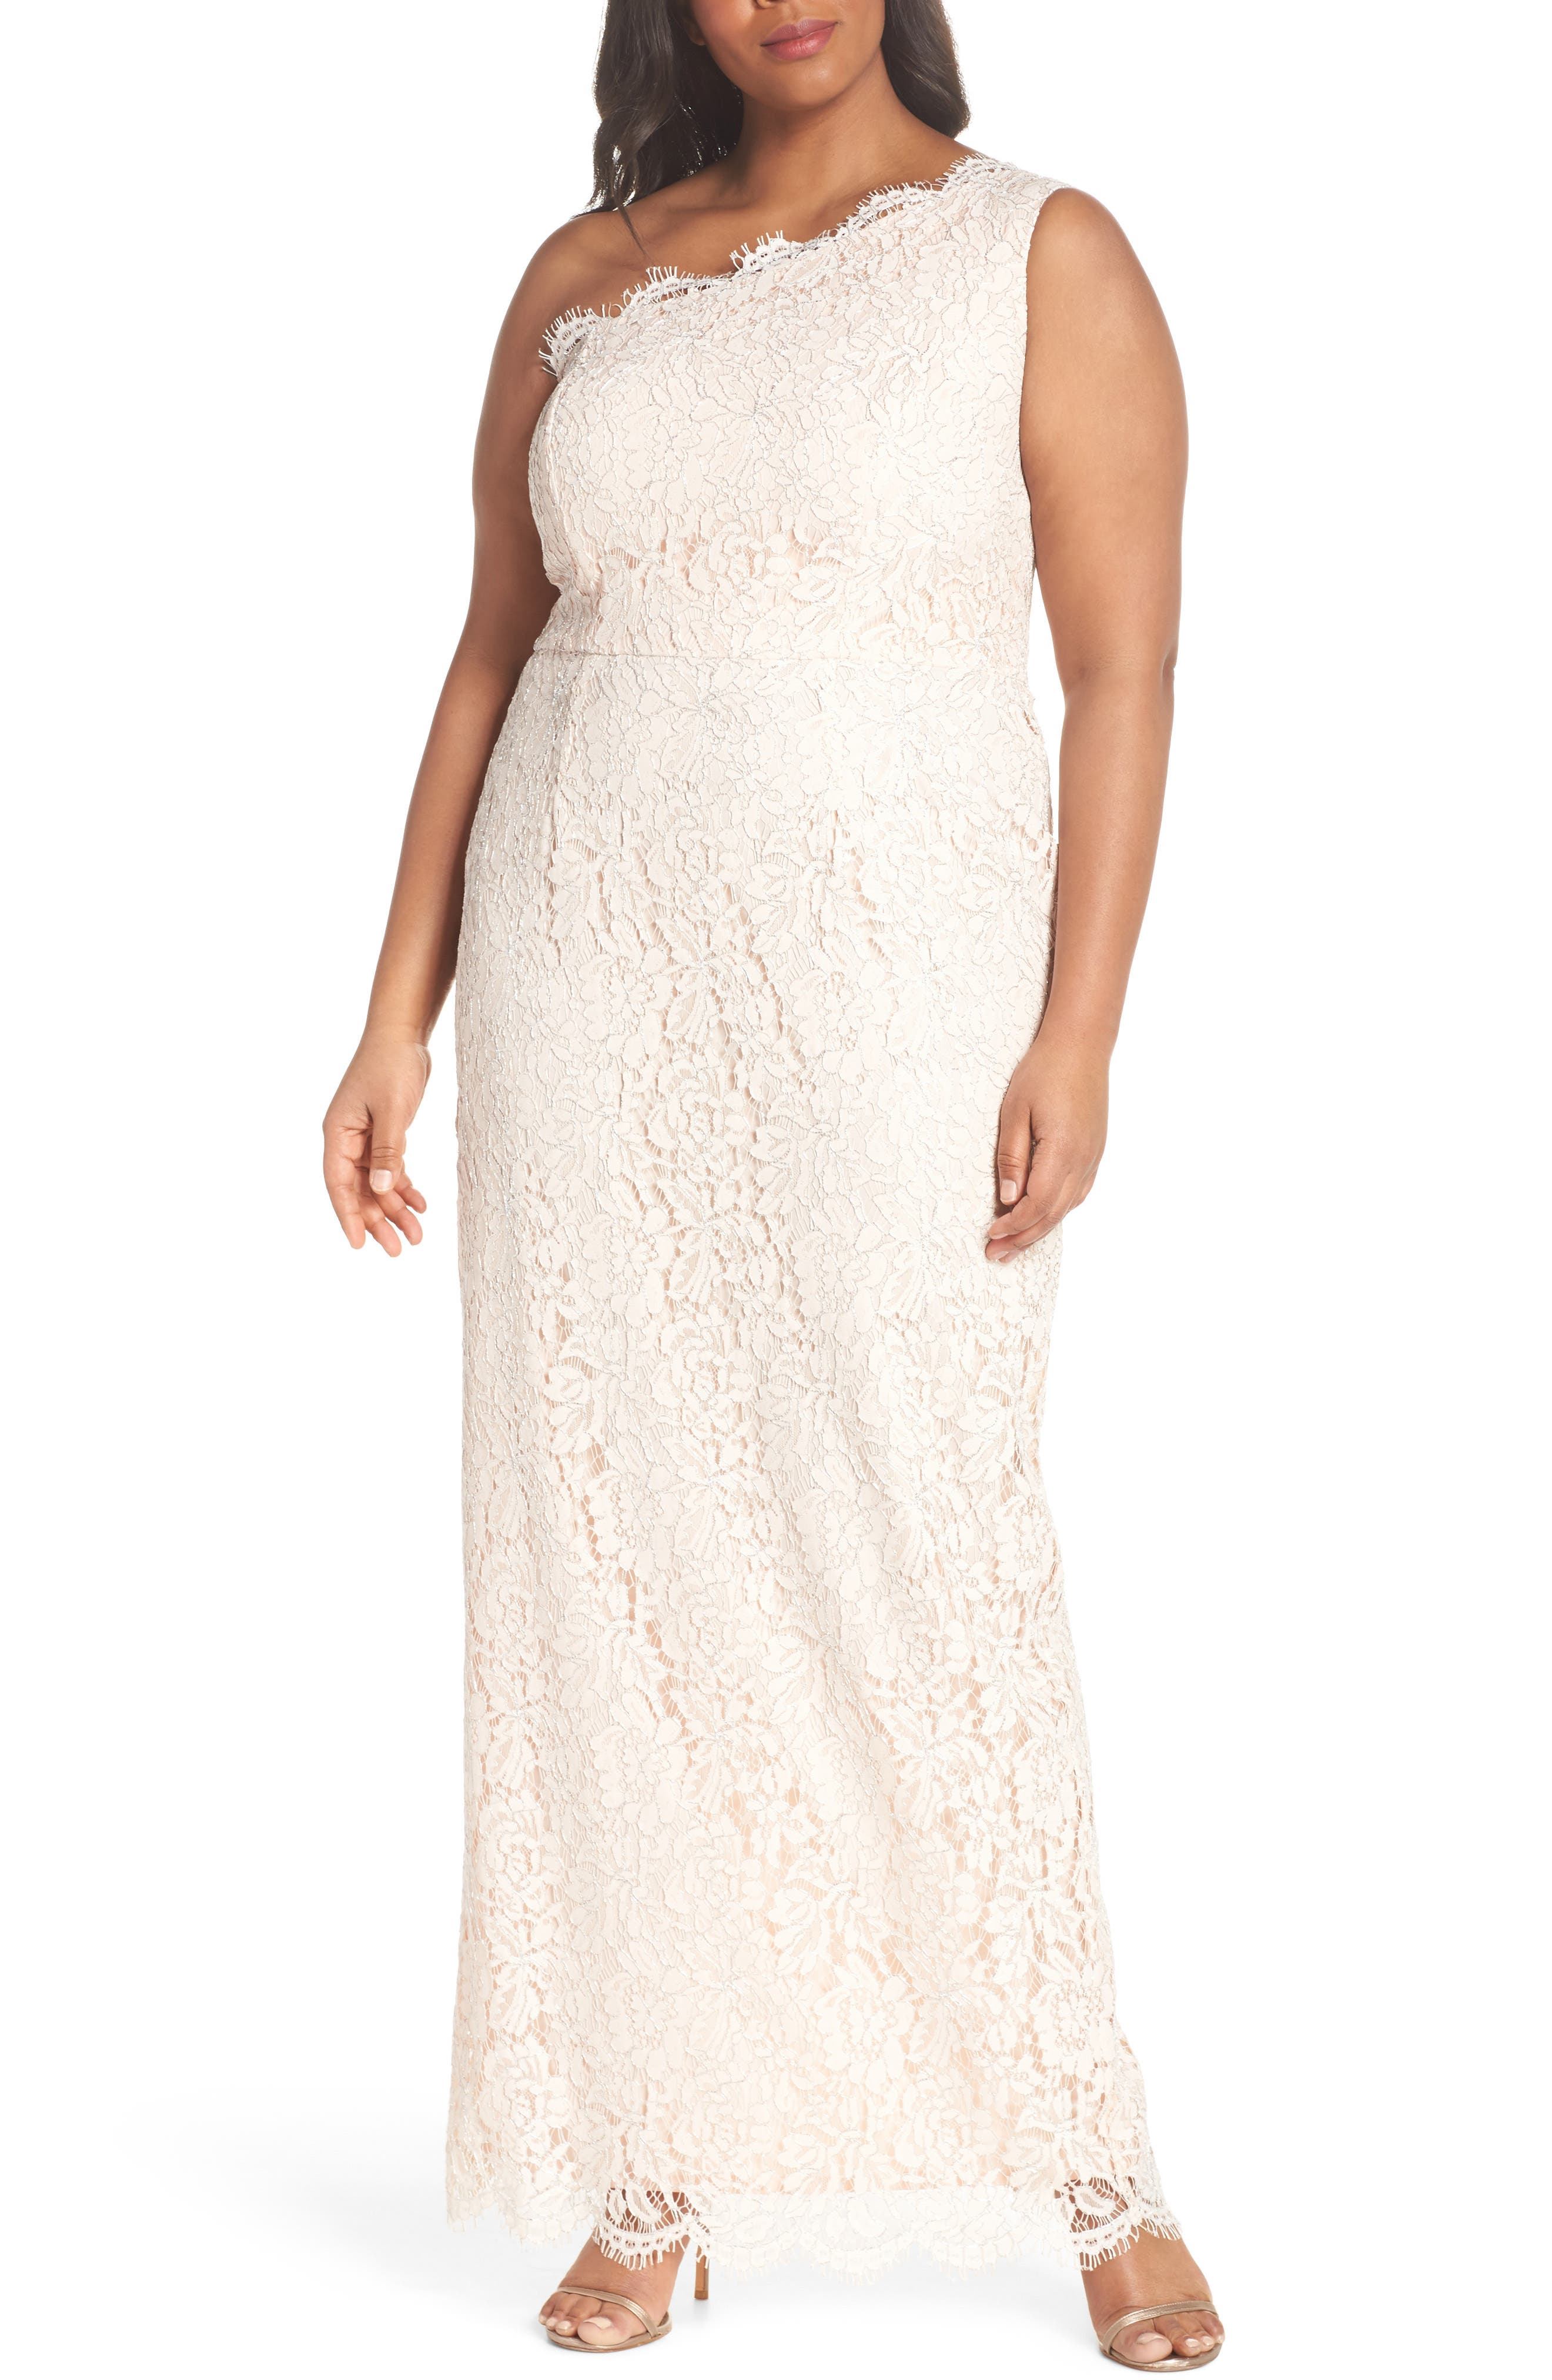 Adrianna Papell One-Shoulder Metallic Lace Gown (Plus Size)